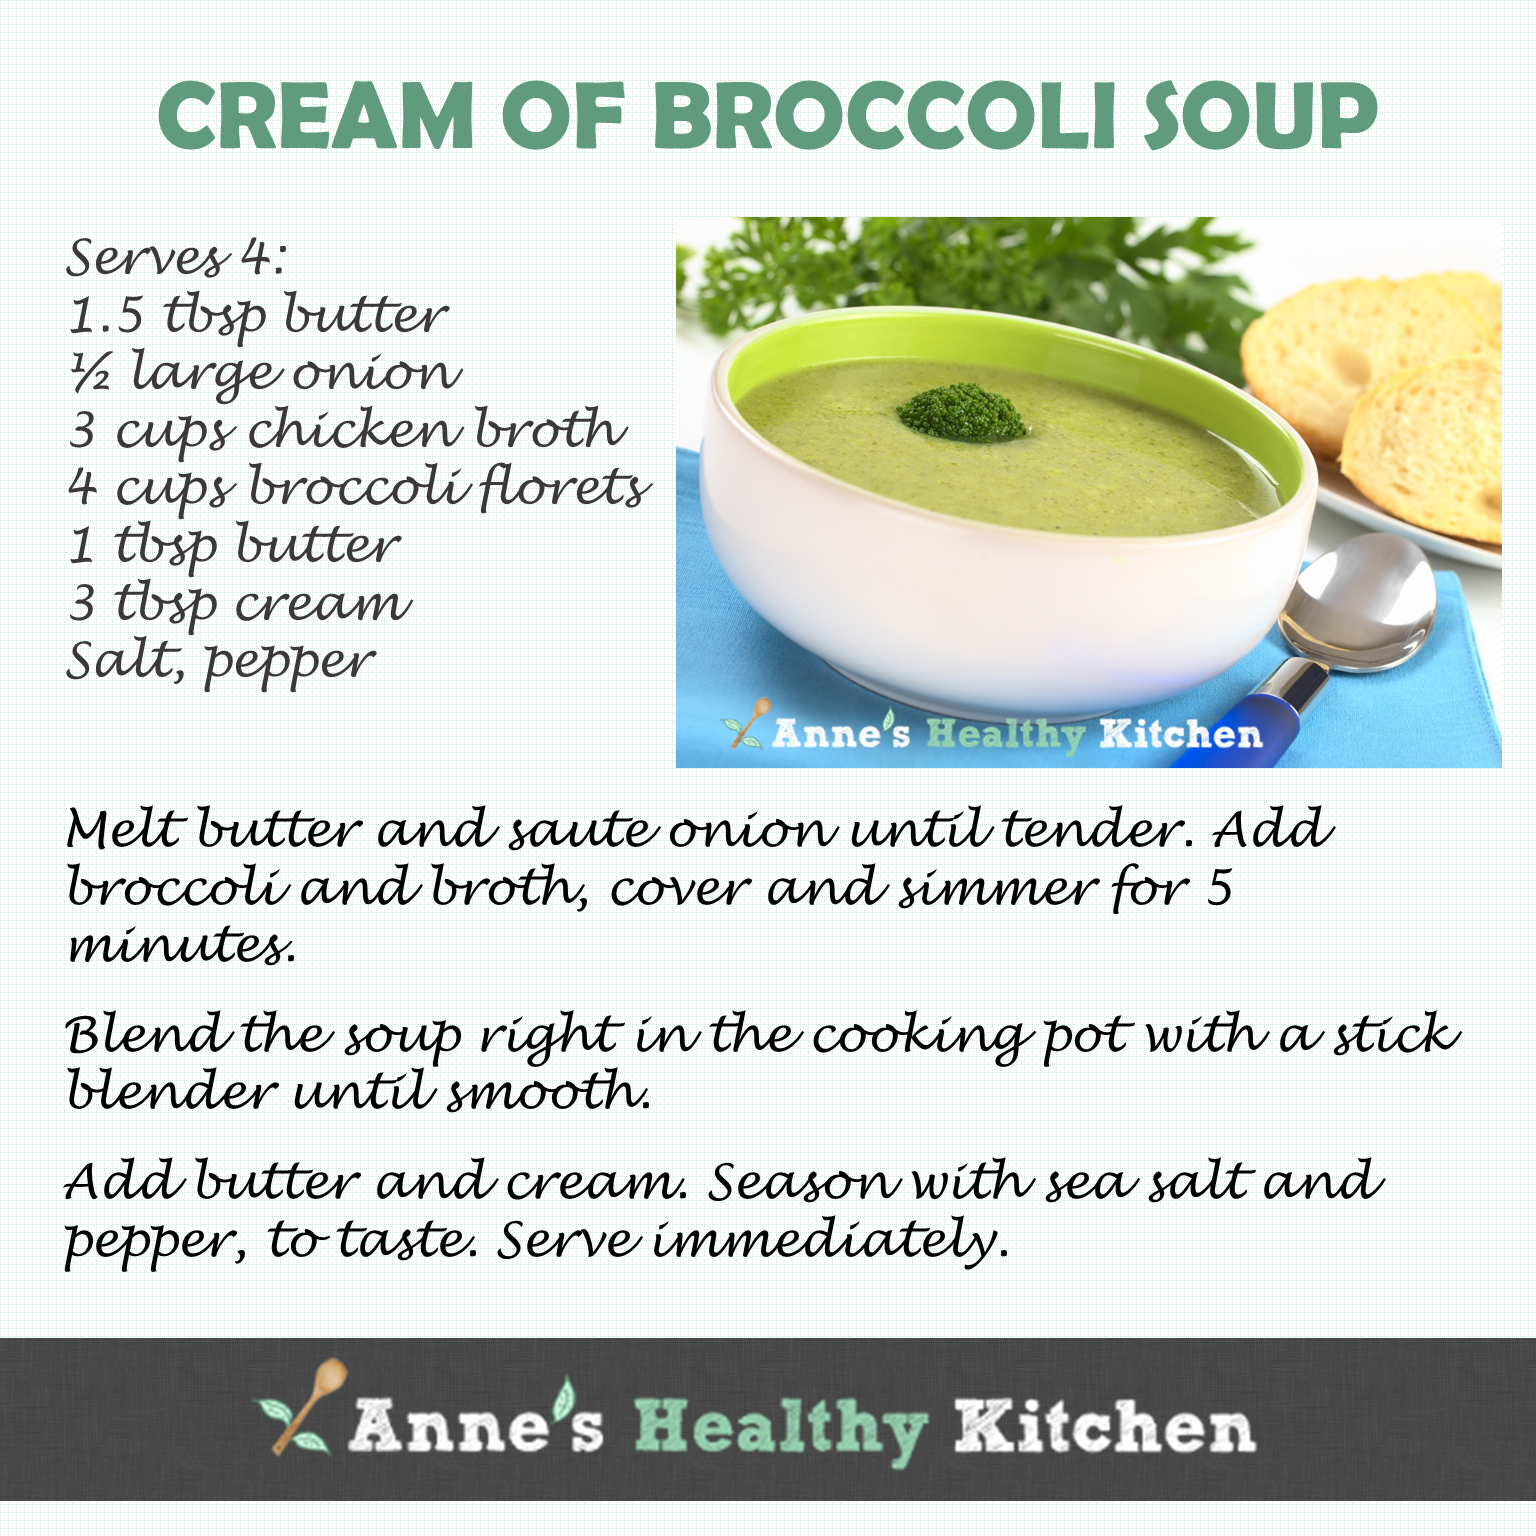 Recipe Card Cream Of Broccoli Soup You Can Get The Full Here